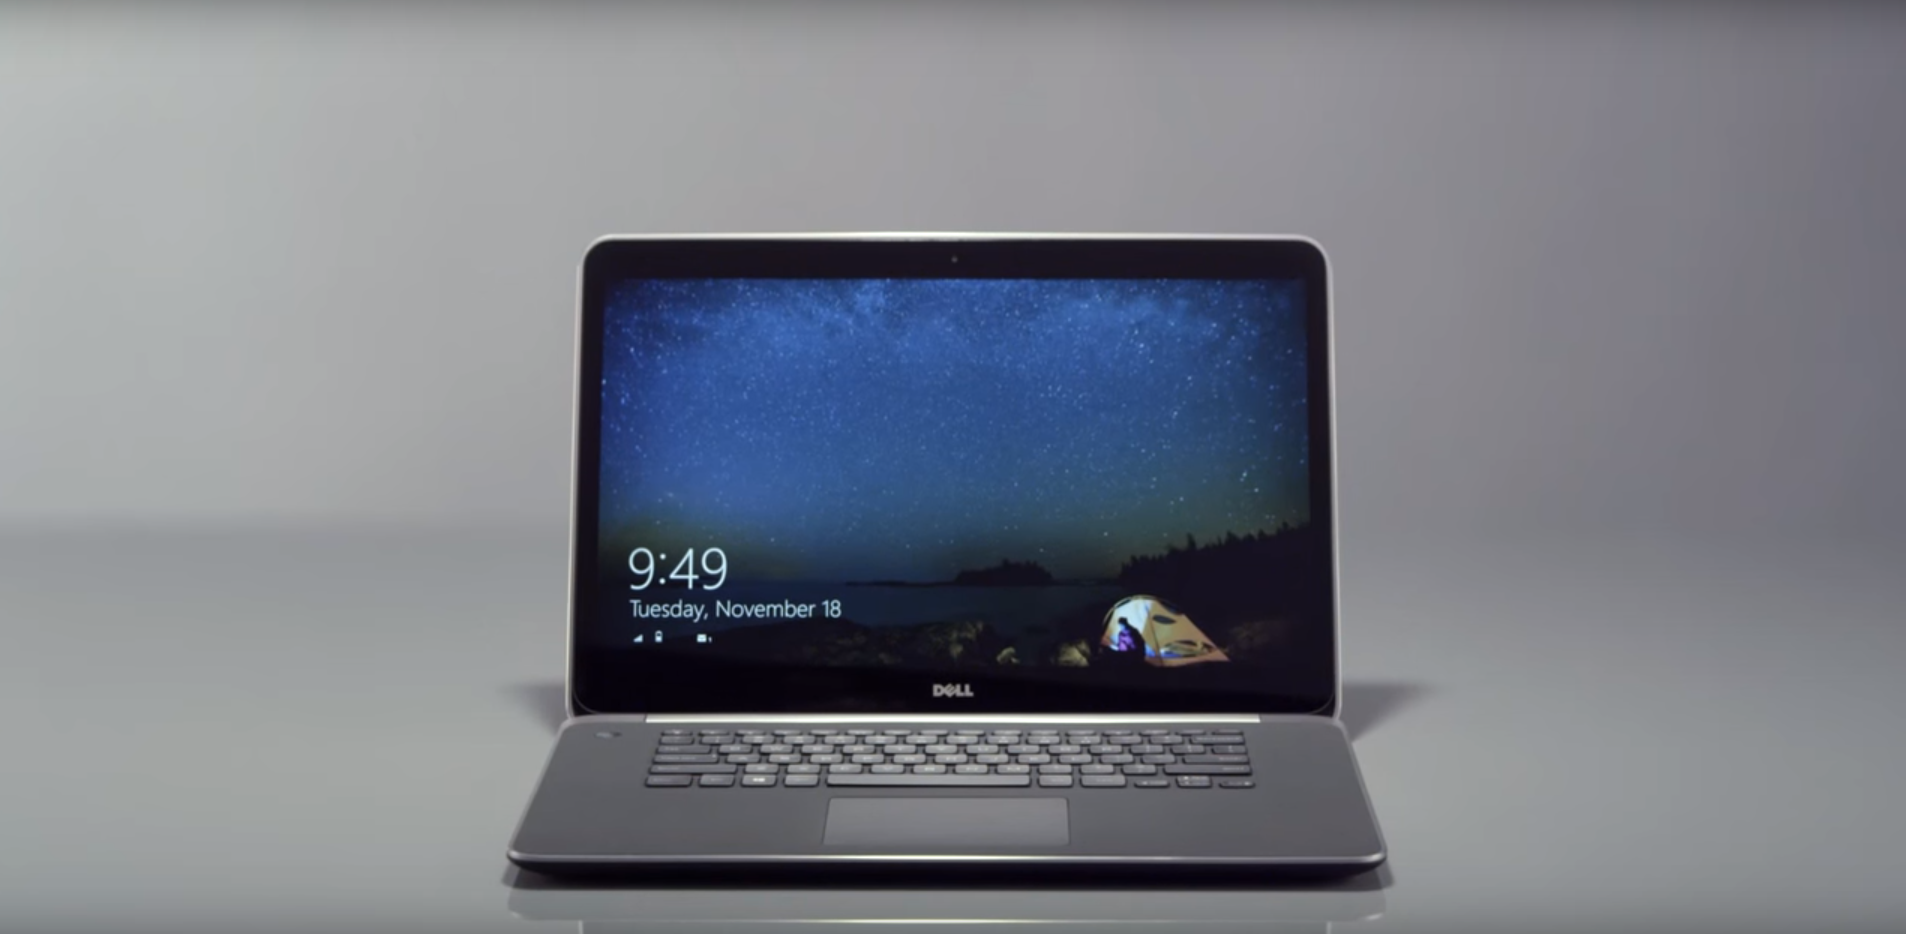 Dell XPS 15 Laptop Product Overview